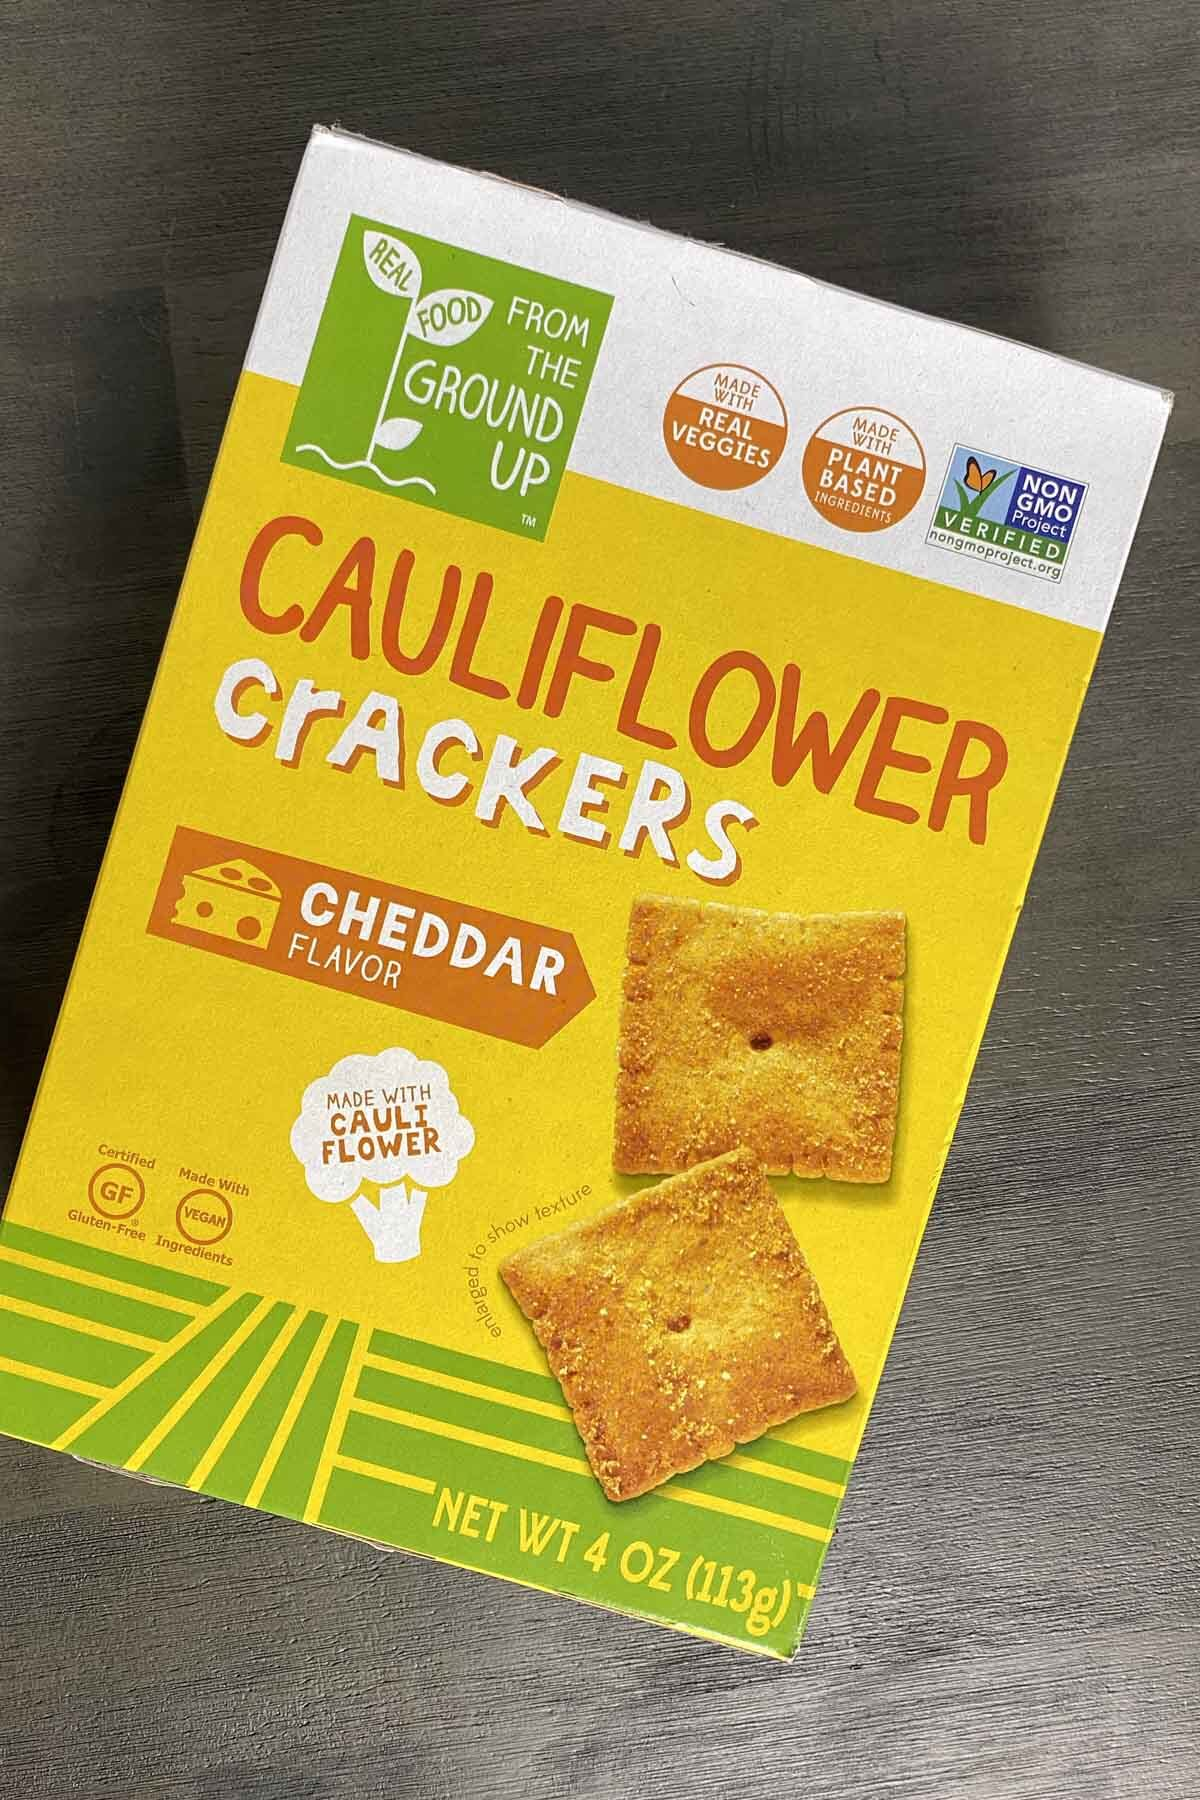 box of Real Food From the Ground UP Cauliflower Crackers, Cheddar Flavor on a gray table. Box is yellow with square, orange crackers depicted on the front